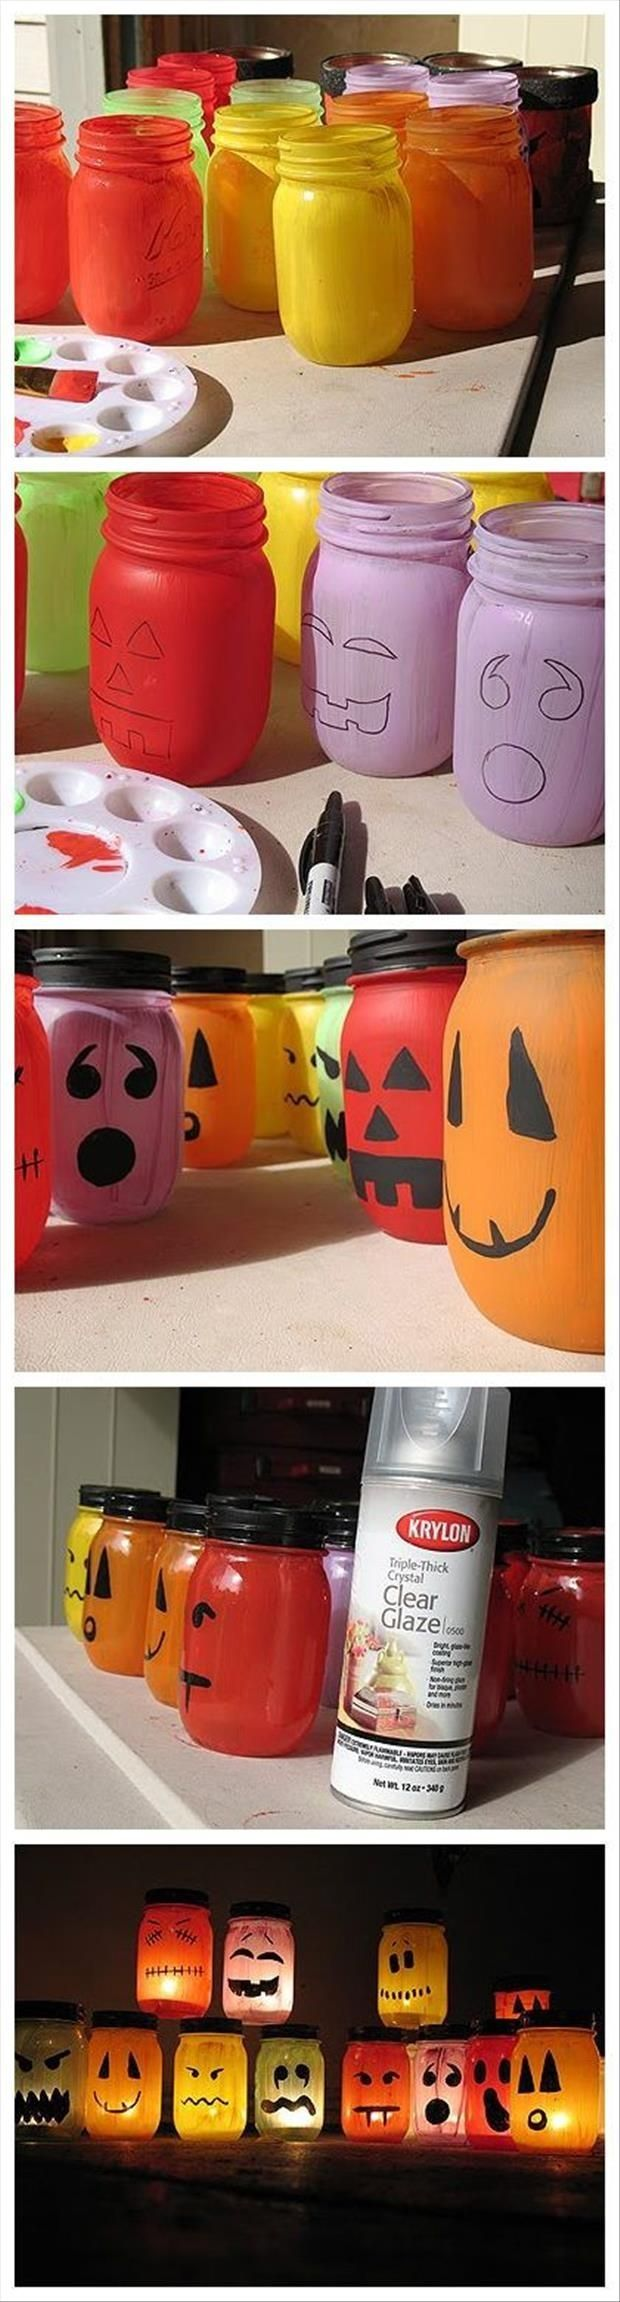 DIY Halloween Jars Pictures, Photos, and Images for Facebook, Tumblr, Pinterest, and Twitter